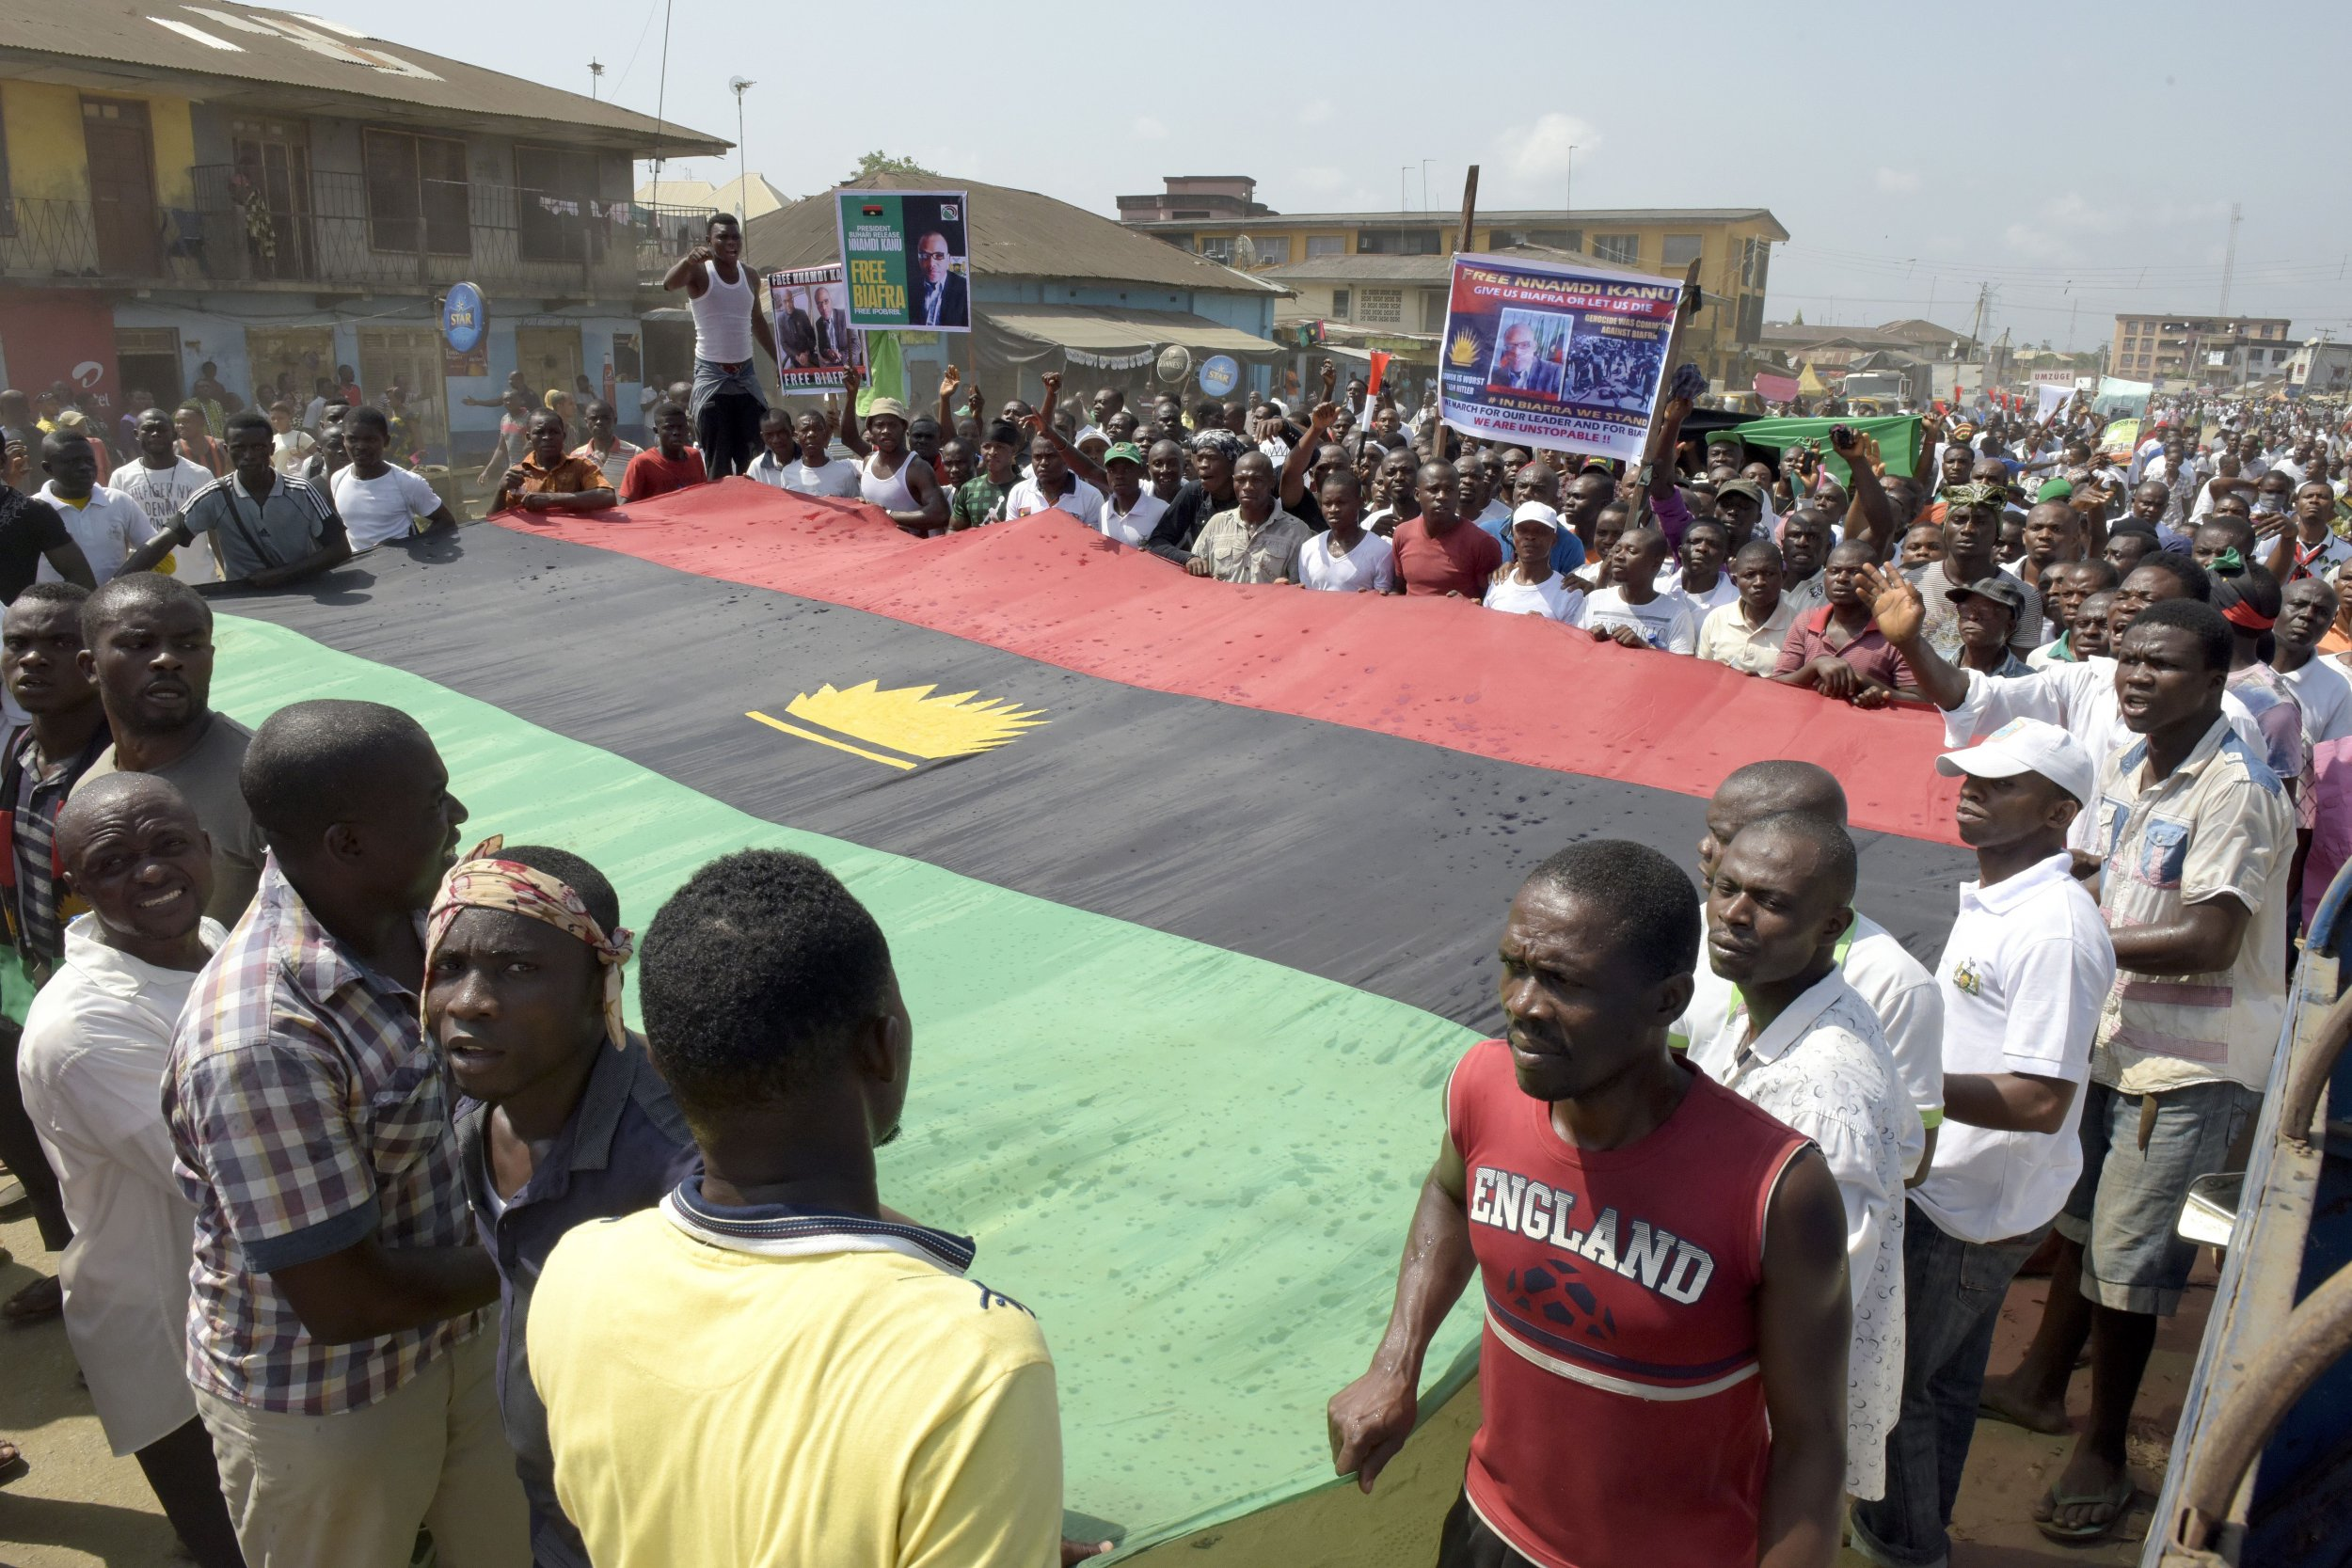 Biafra supporters calling for the release of Nnamdi Kanu march in Aba.